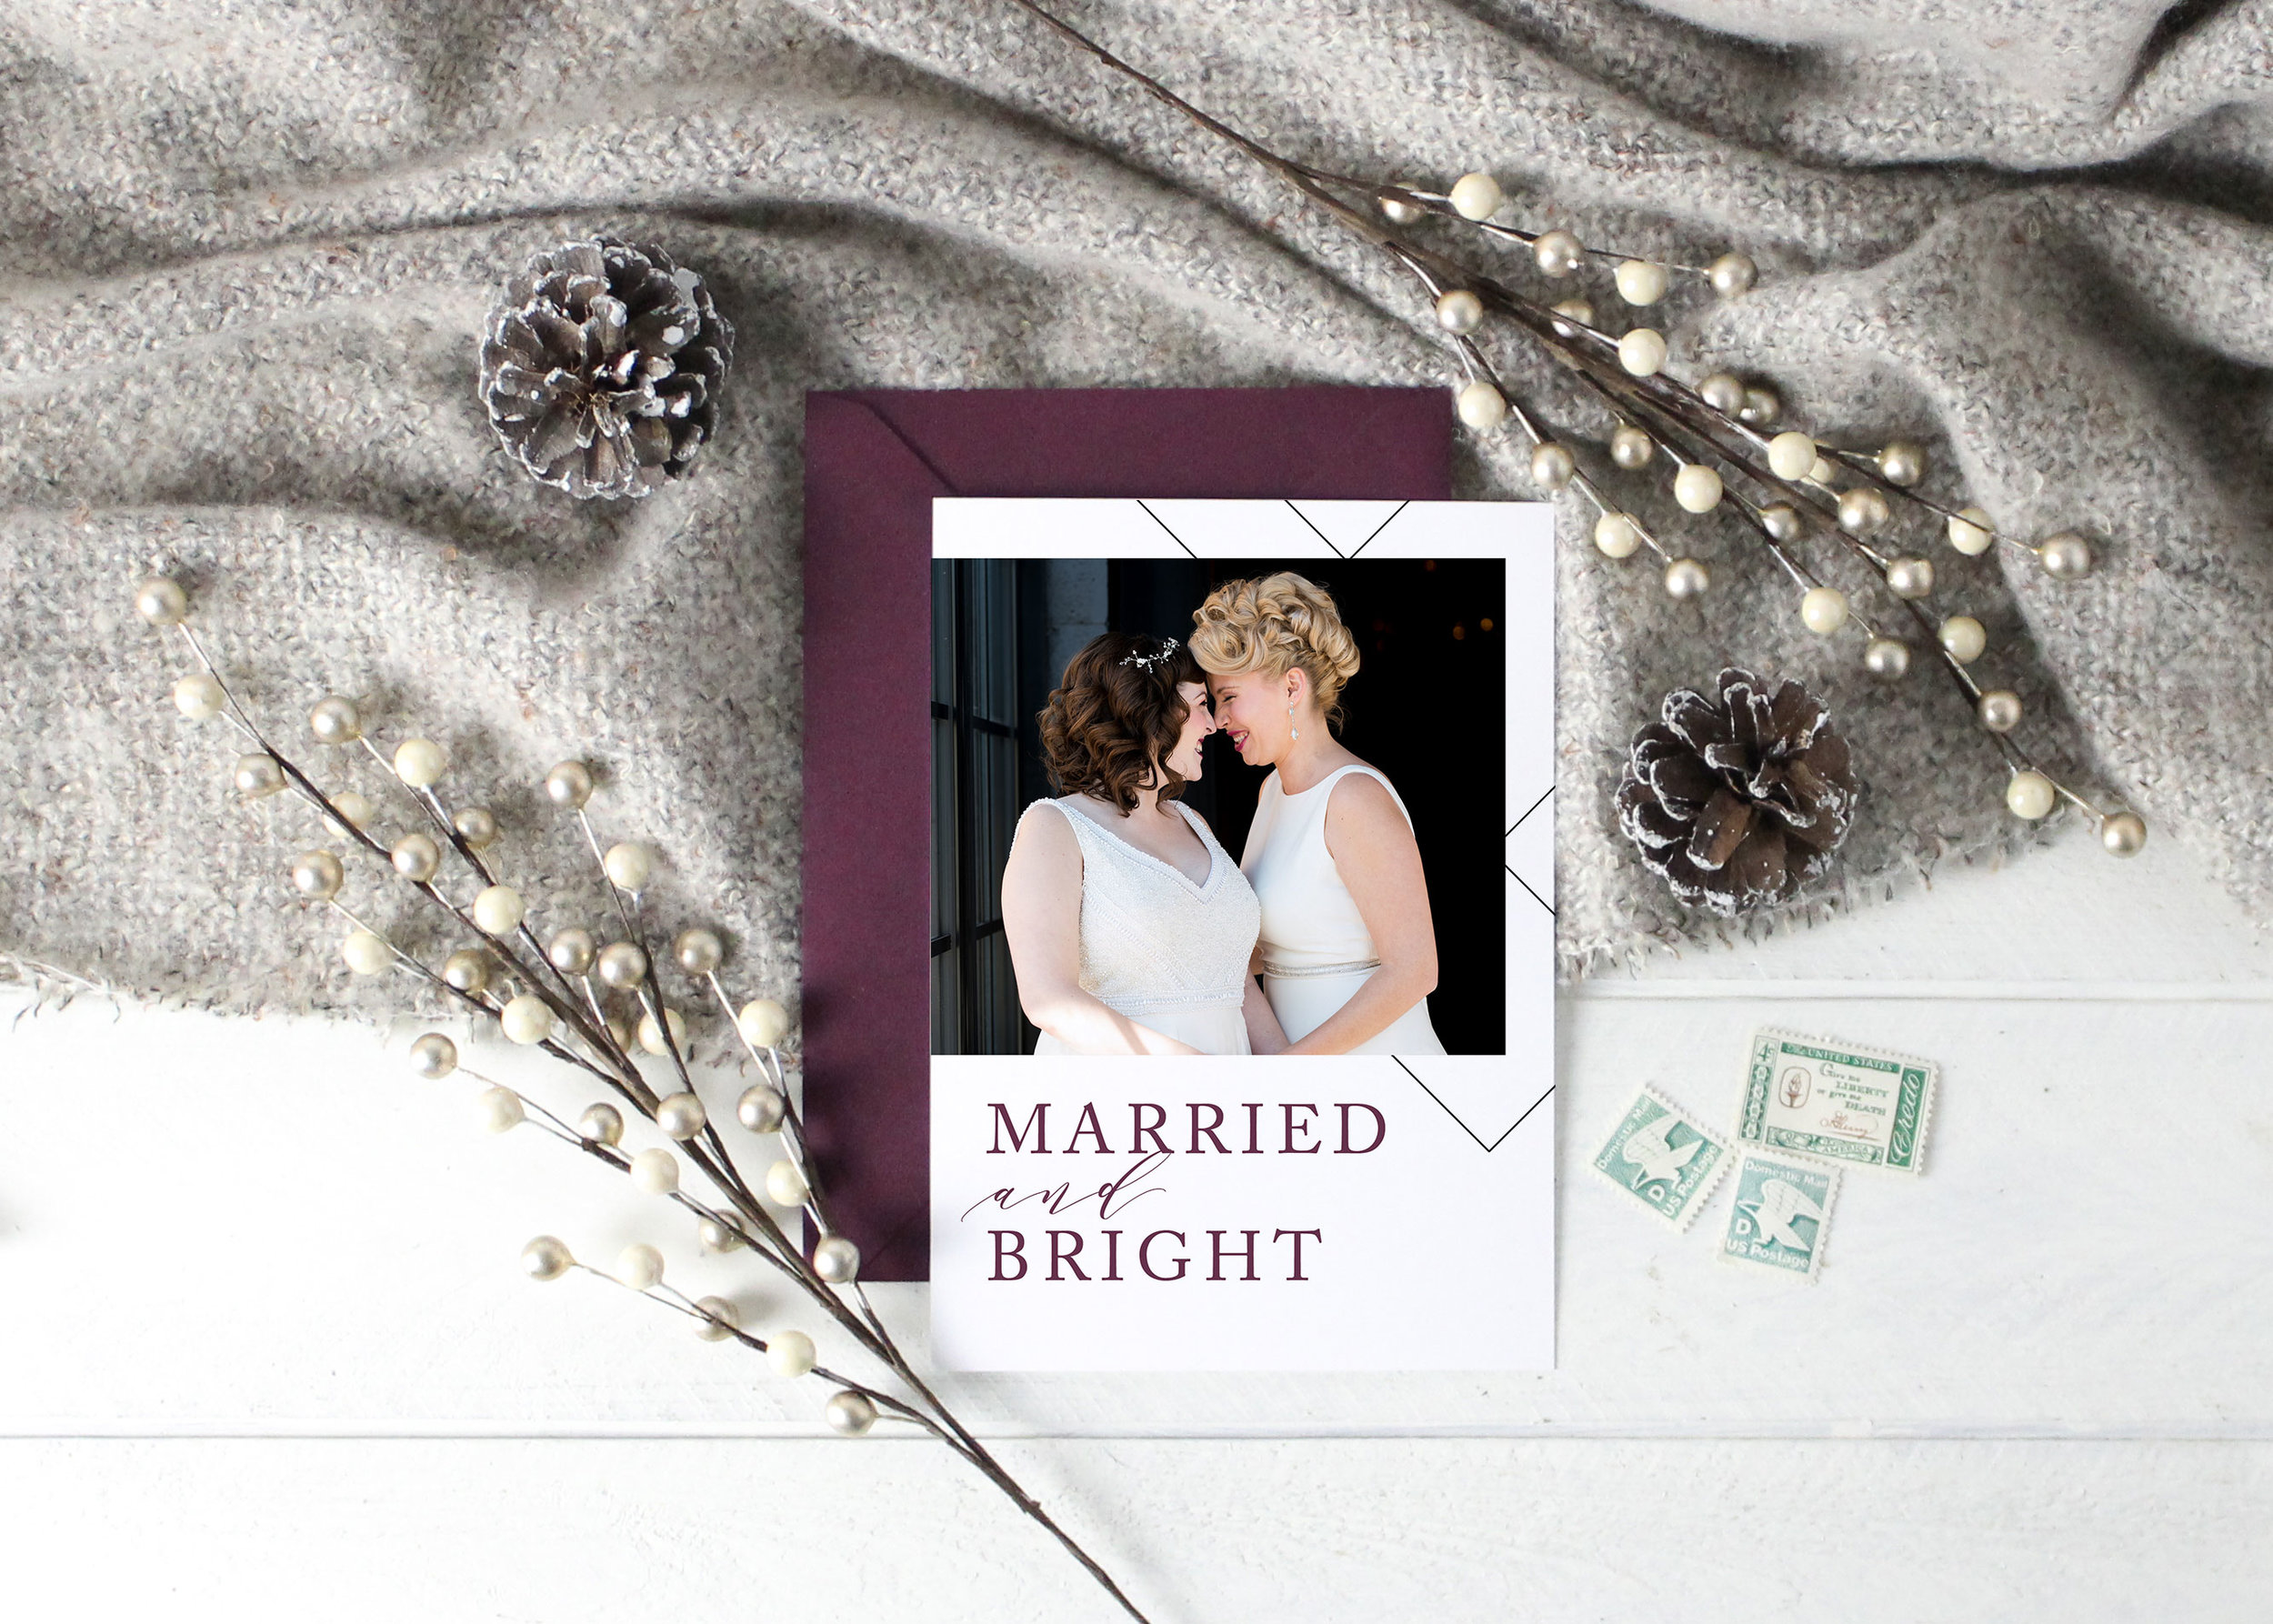 Married and Bright Christmas Card